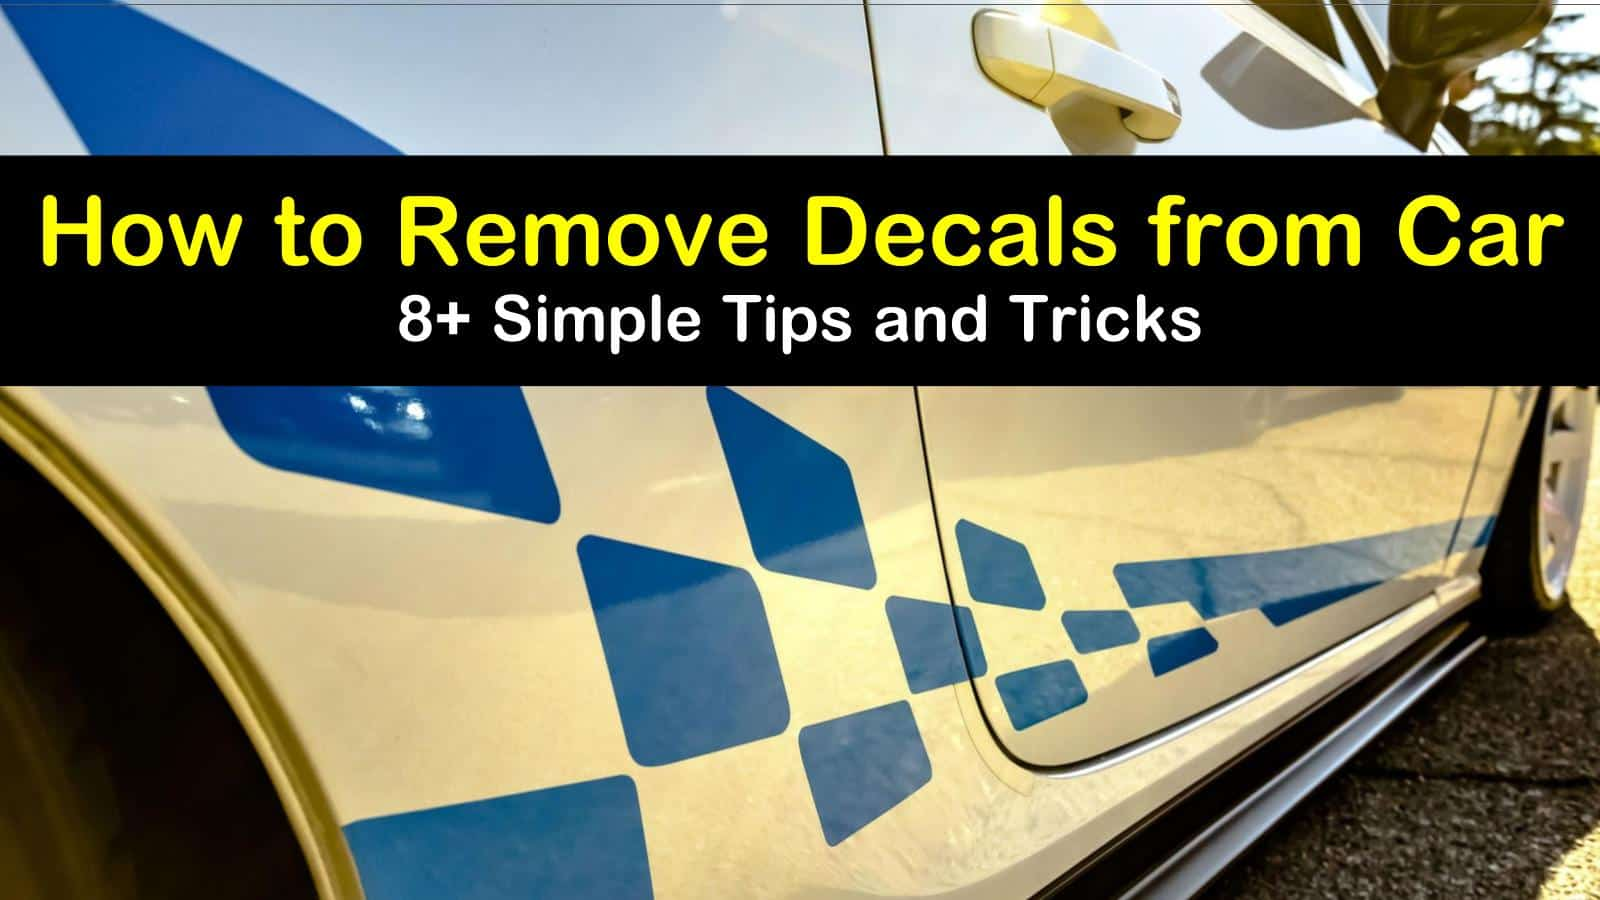 how to remove decals from car titleimg1